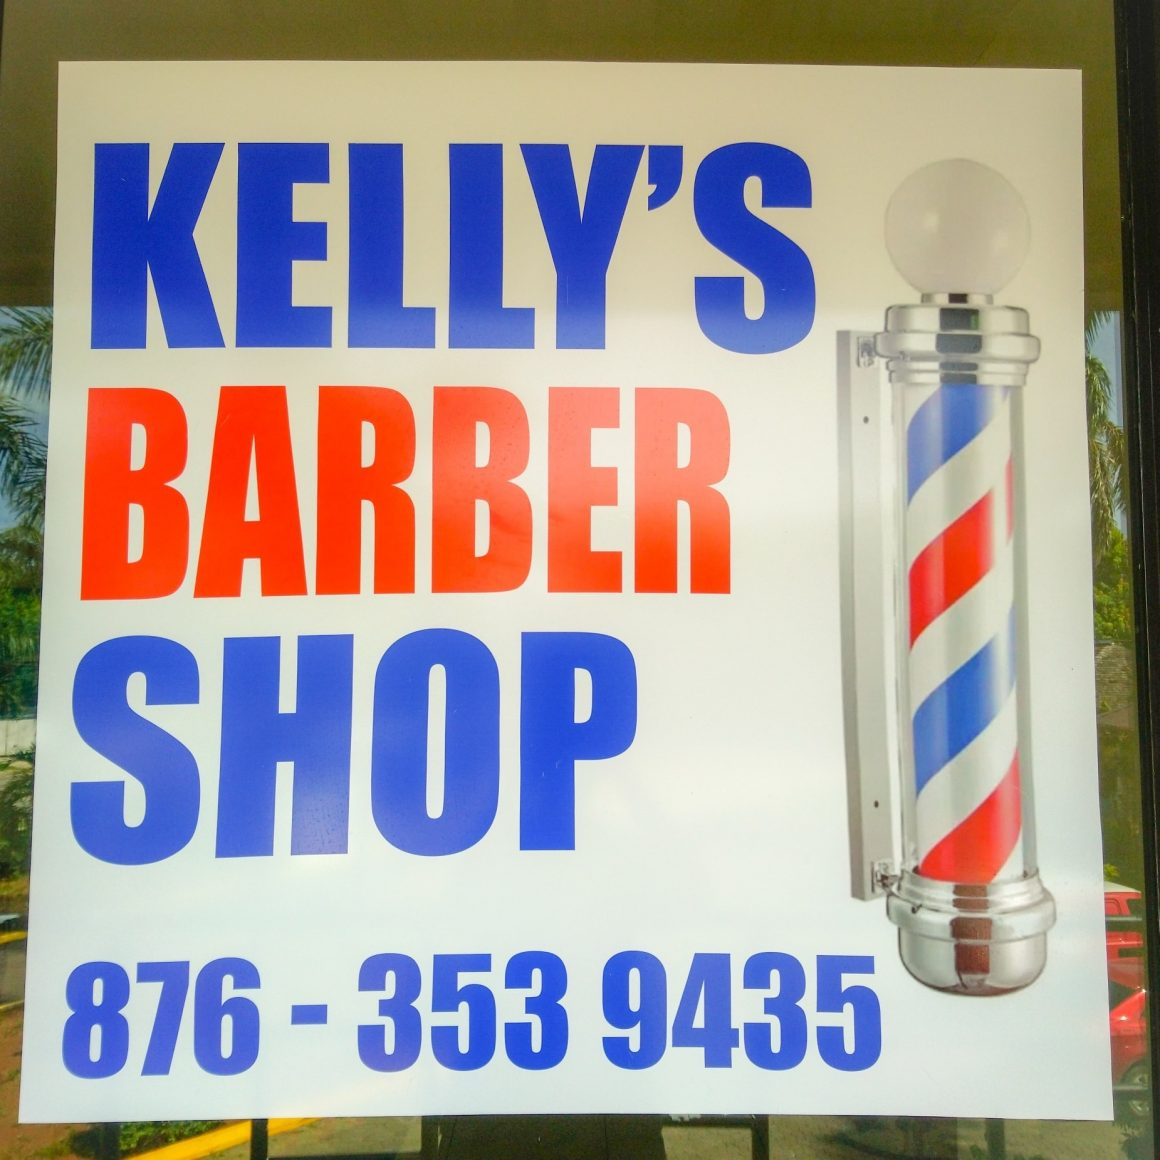 Kelly Barber Shop open